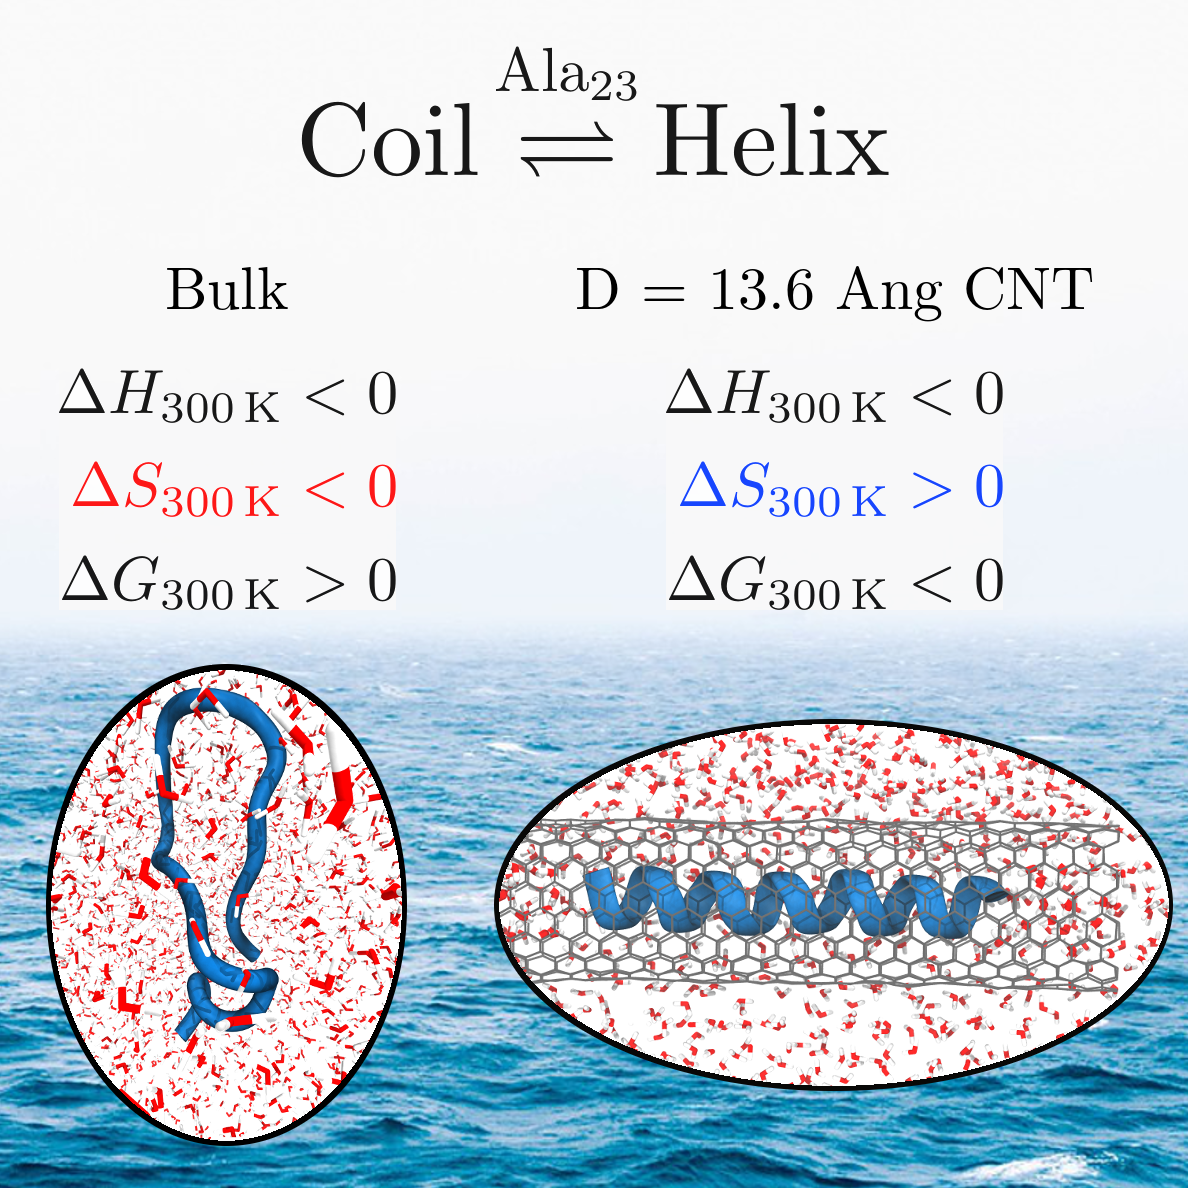 Thermodynamics of Helix−Coil Transitions of Polyalanine in Open Carbon Nanotubes